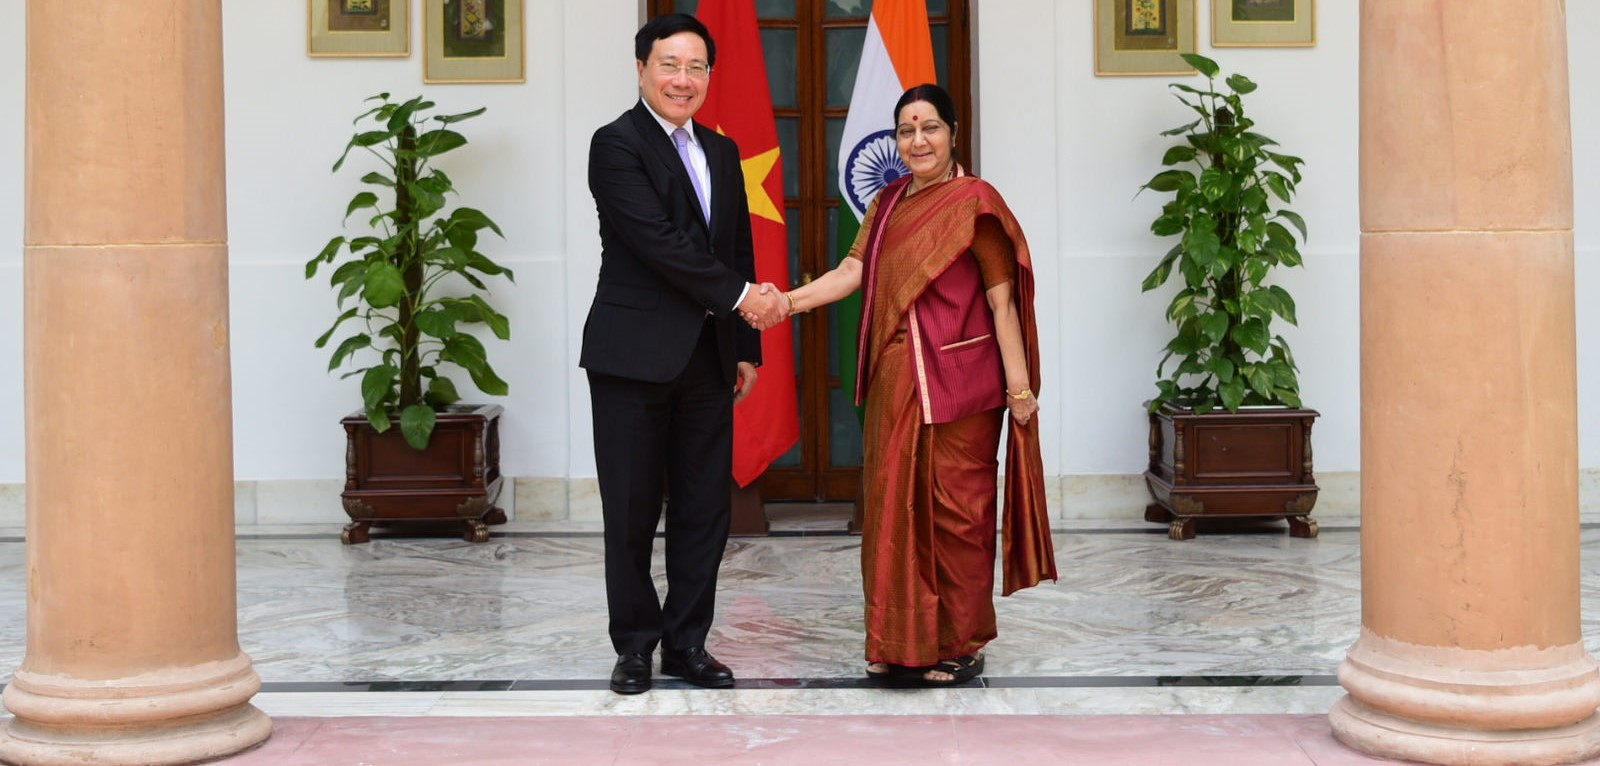 Vietnam's Deputy PM and Foreign Minister Pham Binh Minh with India's Minister of External Affairs Sushma Swaraj in New Delhi on 4 July (Photo: Flick/India MEA)